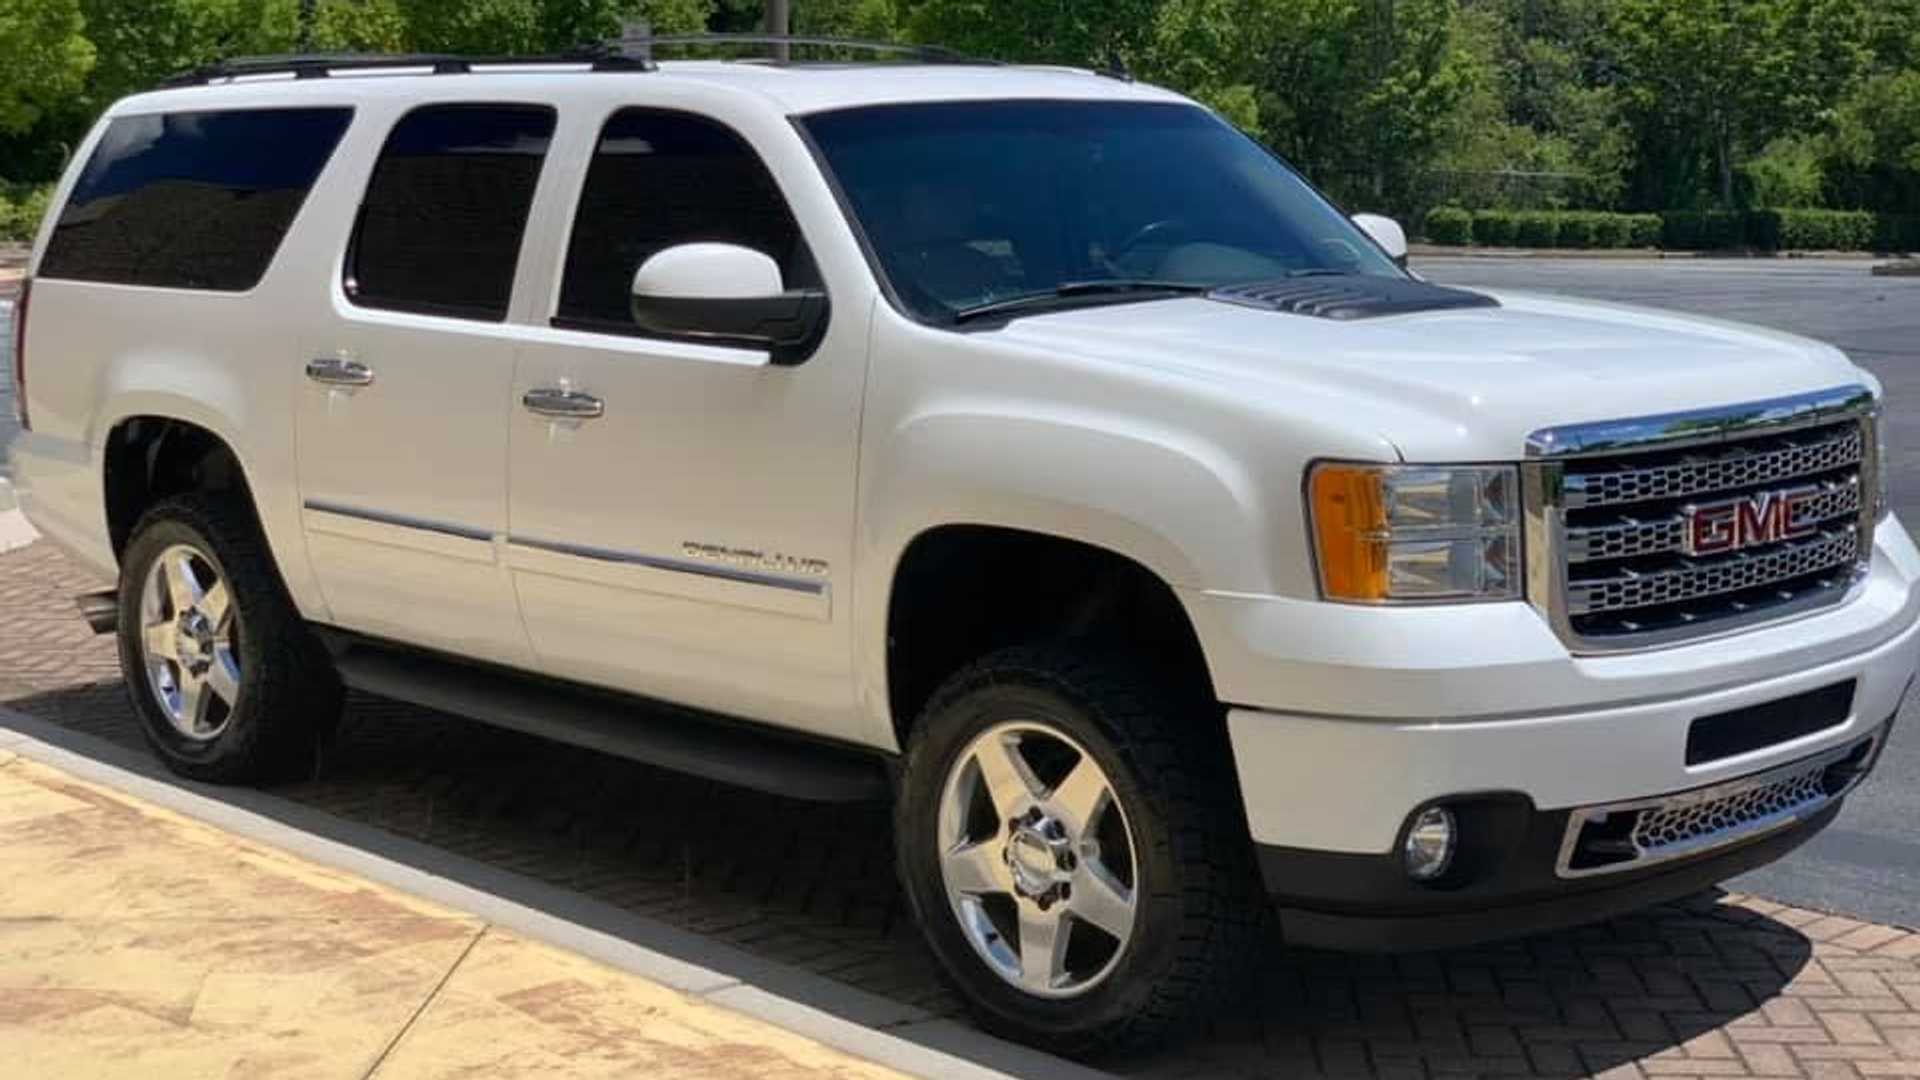 Shop Builds Chevrolet Suburban Suvs With Diesel V8 For Serious Towing